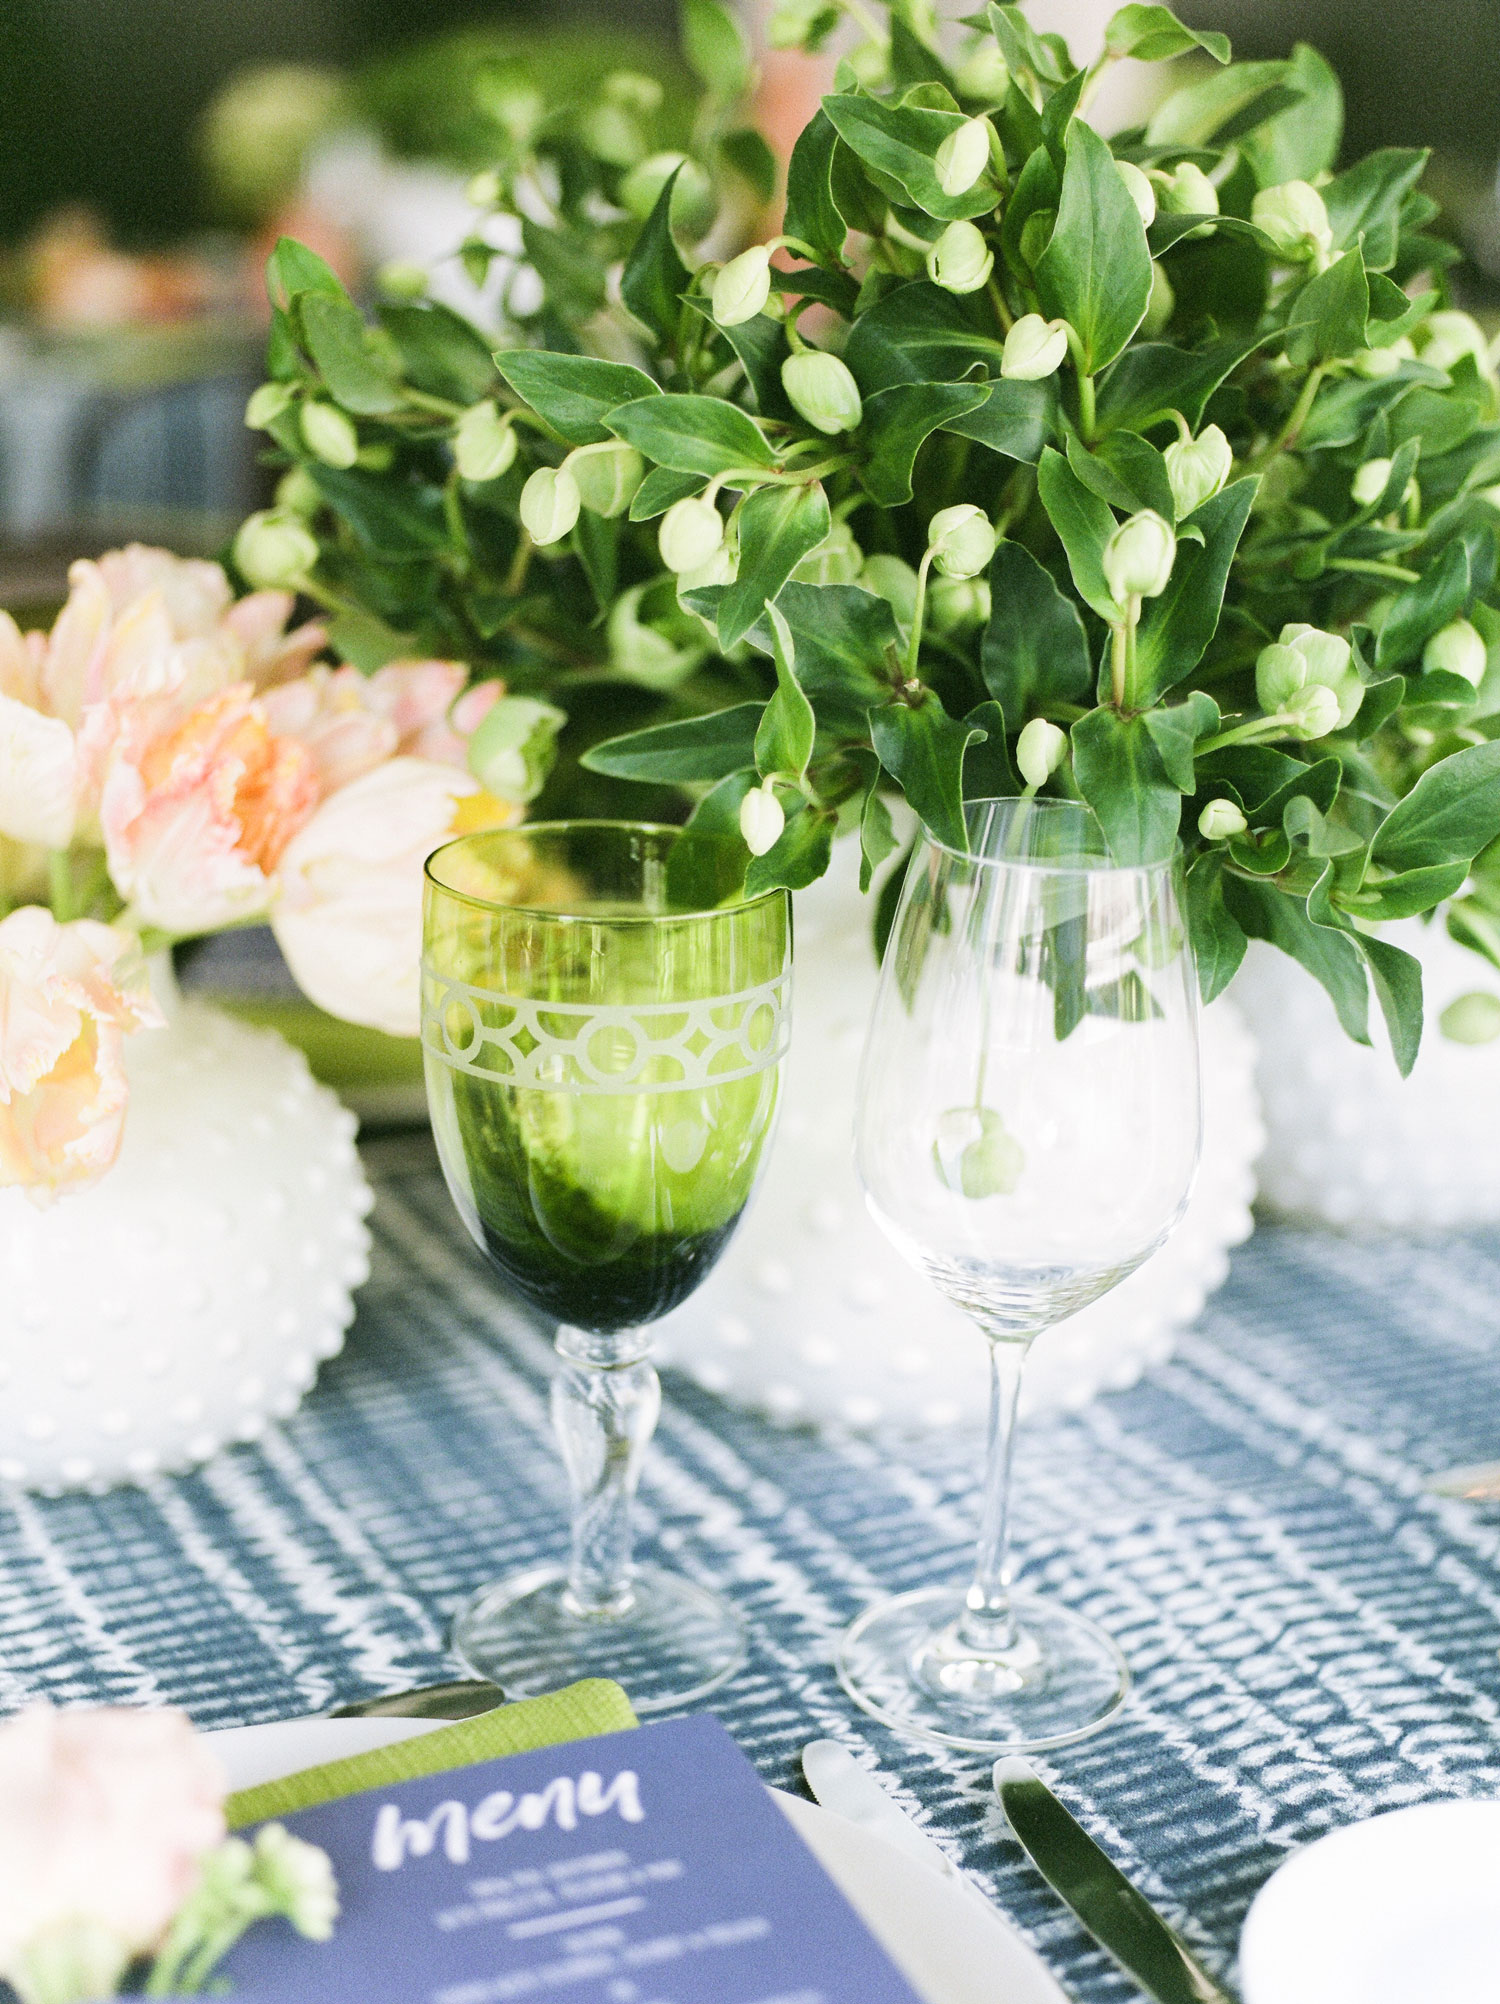 wedding engagement party bridal shower rooftop colorful summer wedding event green glassware drinkware goblet